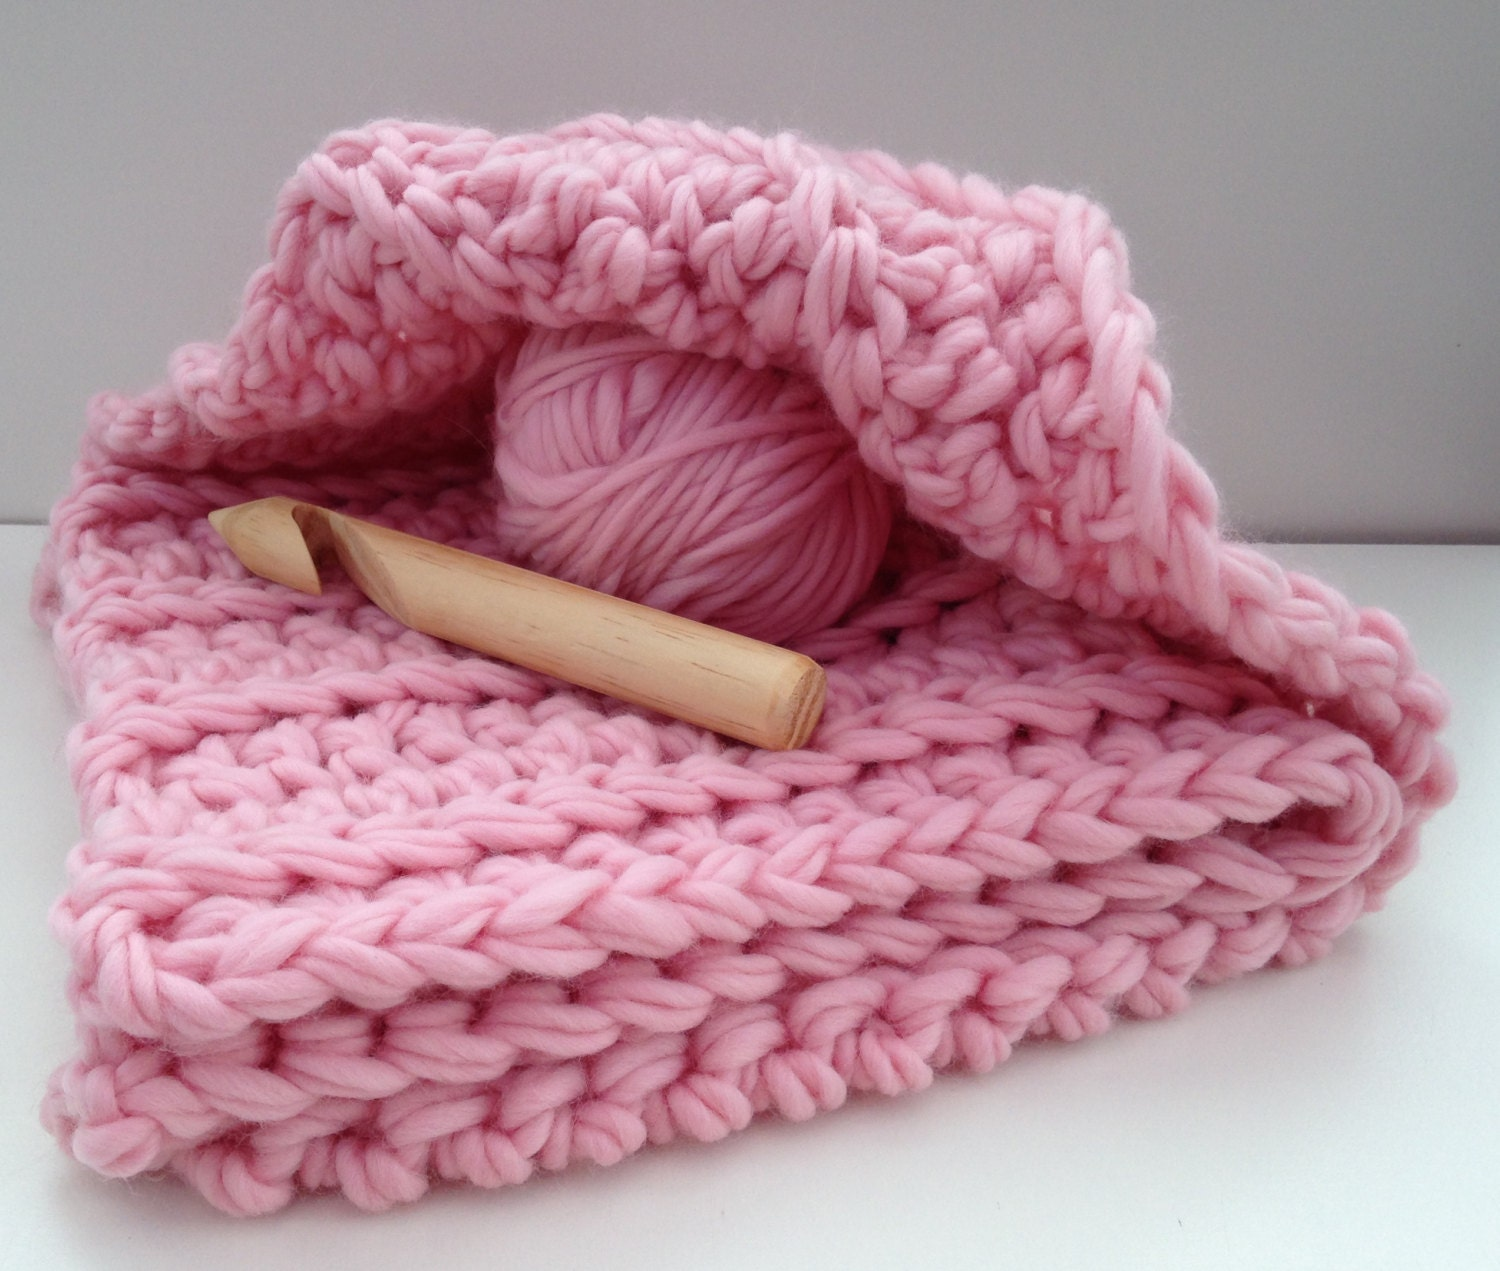 Crochet Patterns Kits : Blanket crochet kit baby blanket. DIY Learn to crochet super